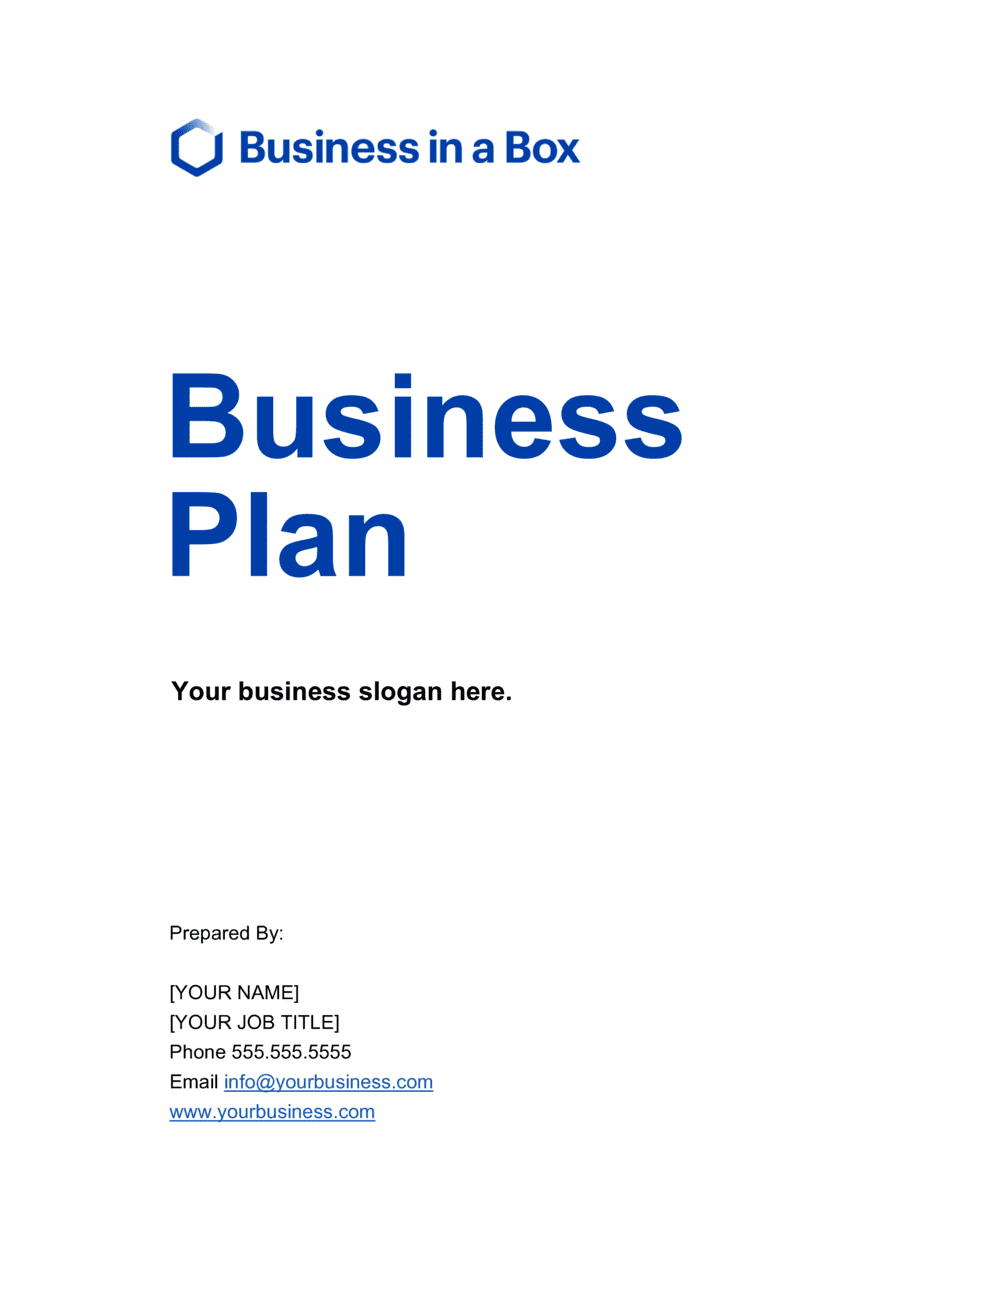 Business-in-a-Box's Business Plan - Cover Page White Template